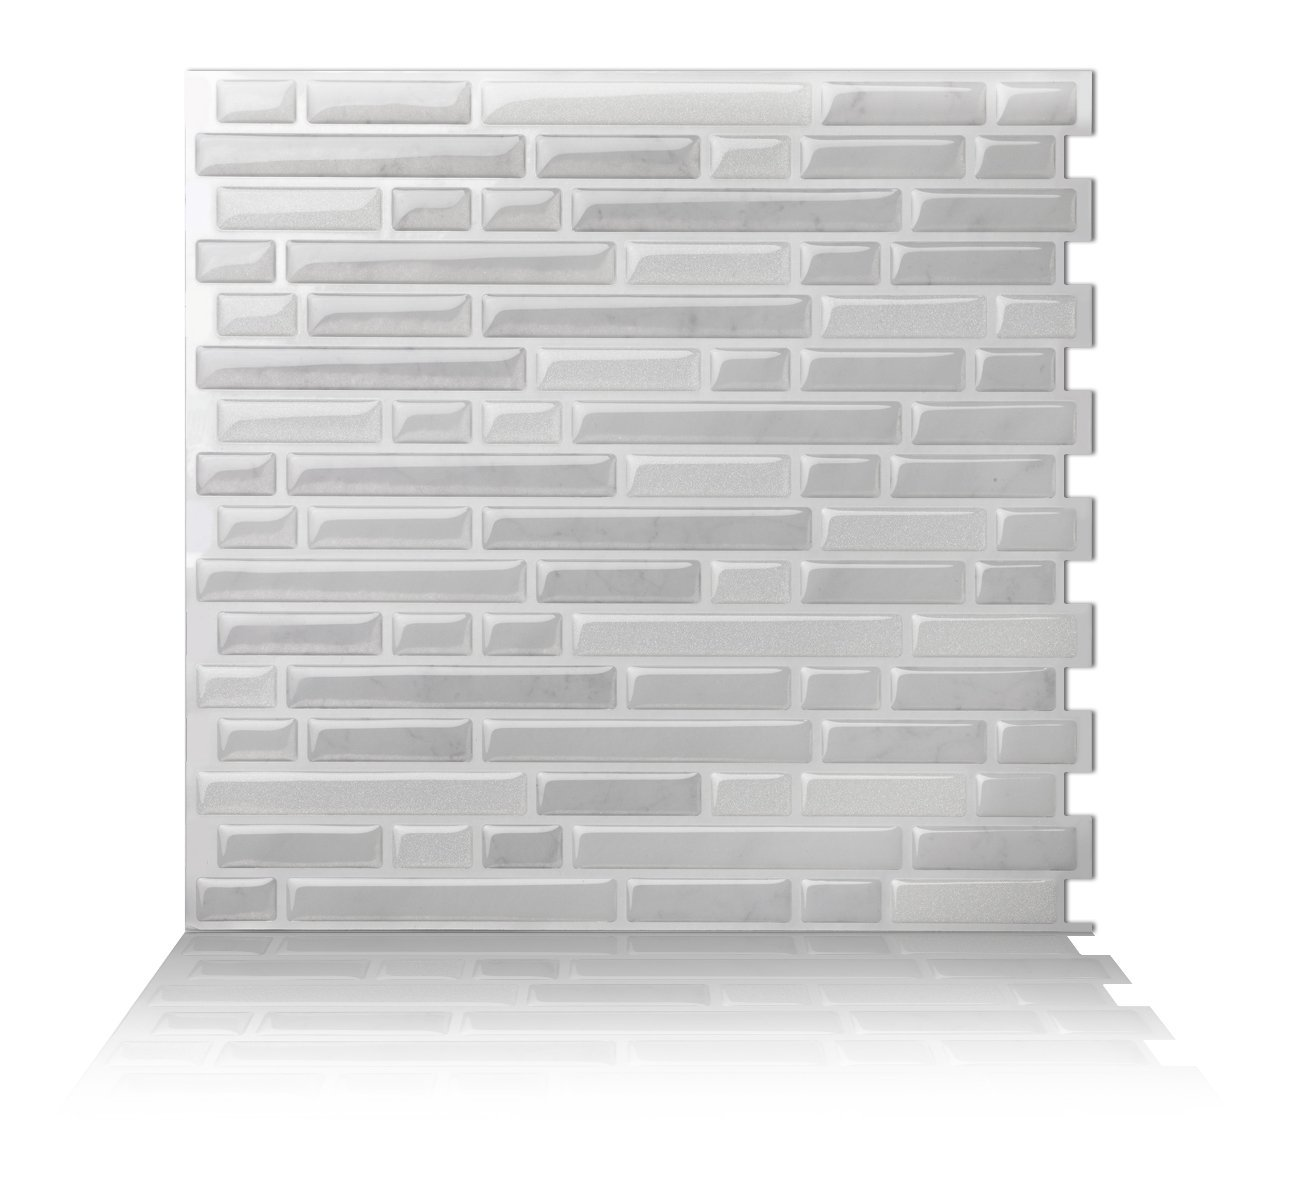 Cheap Instant Mosaic Peel And Stick Tiles, find Instant Mosaic Peel ...